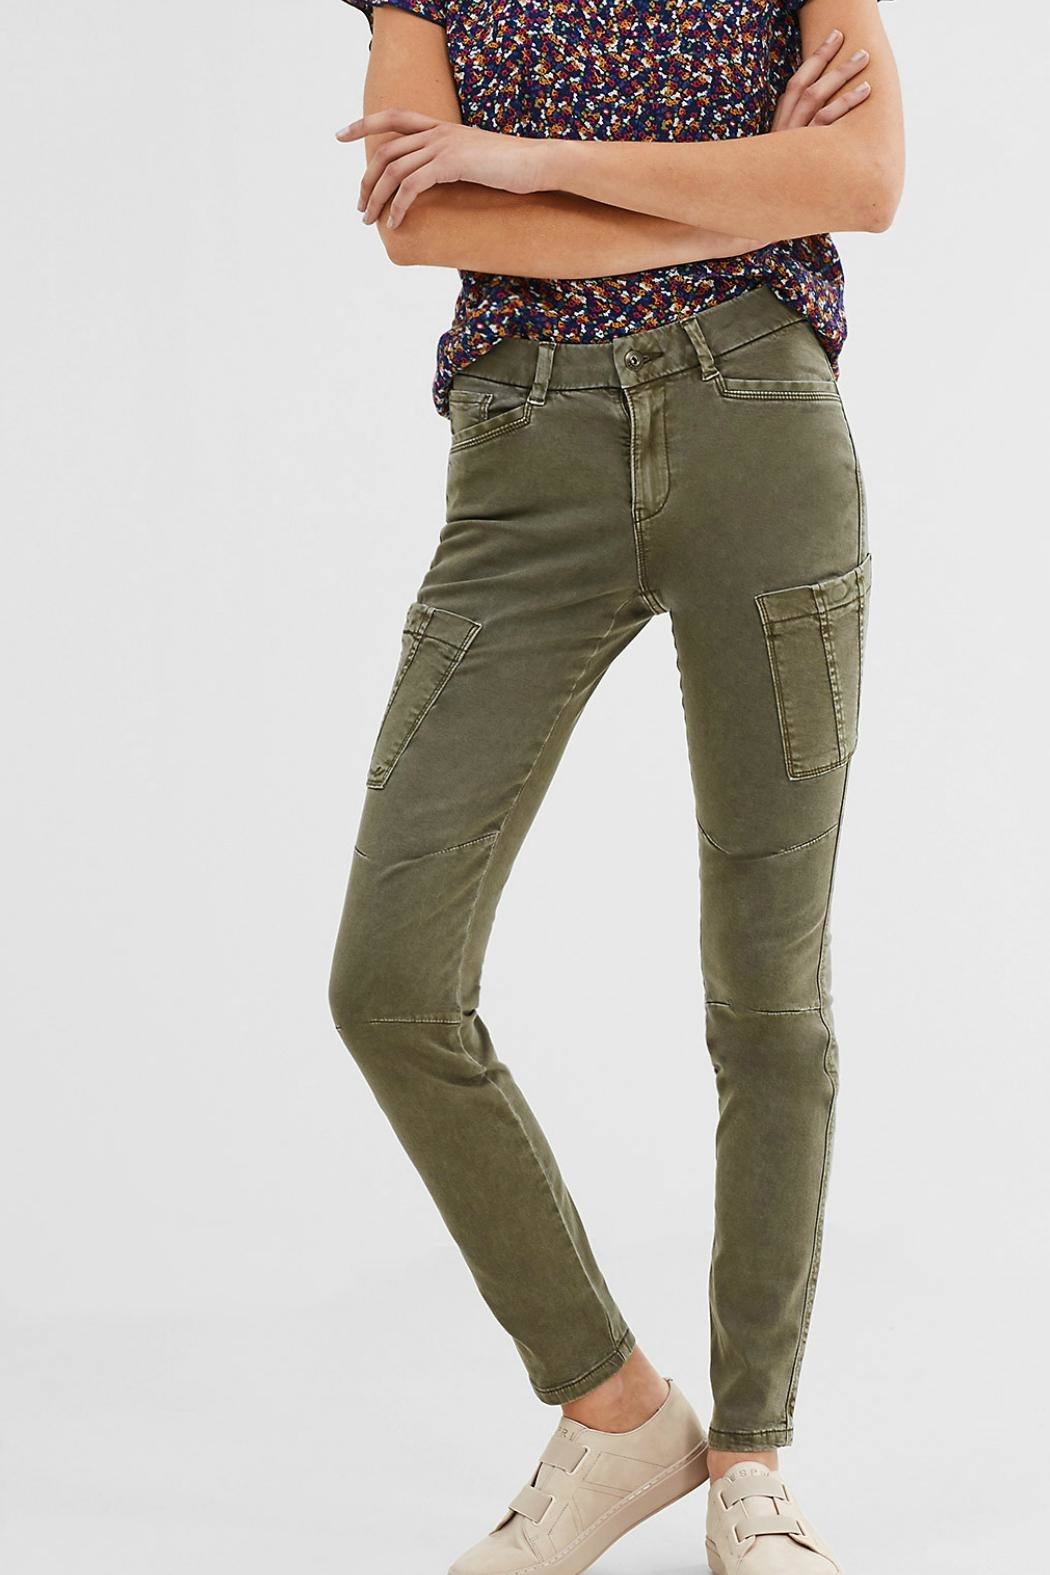 ESPRIT jewel Khaki Woven Pants - Main Image